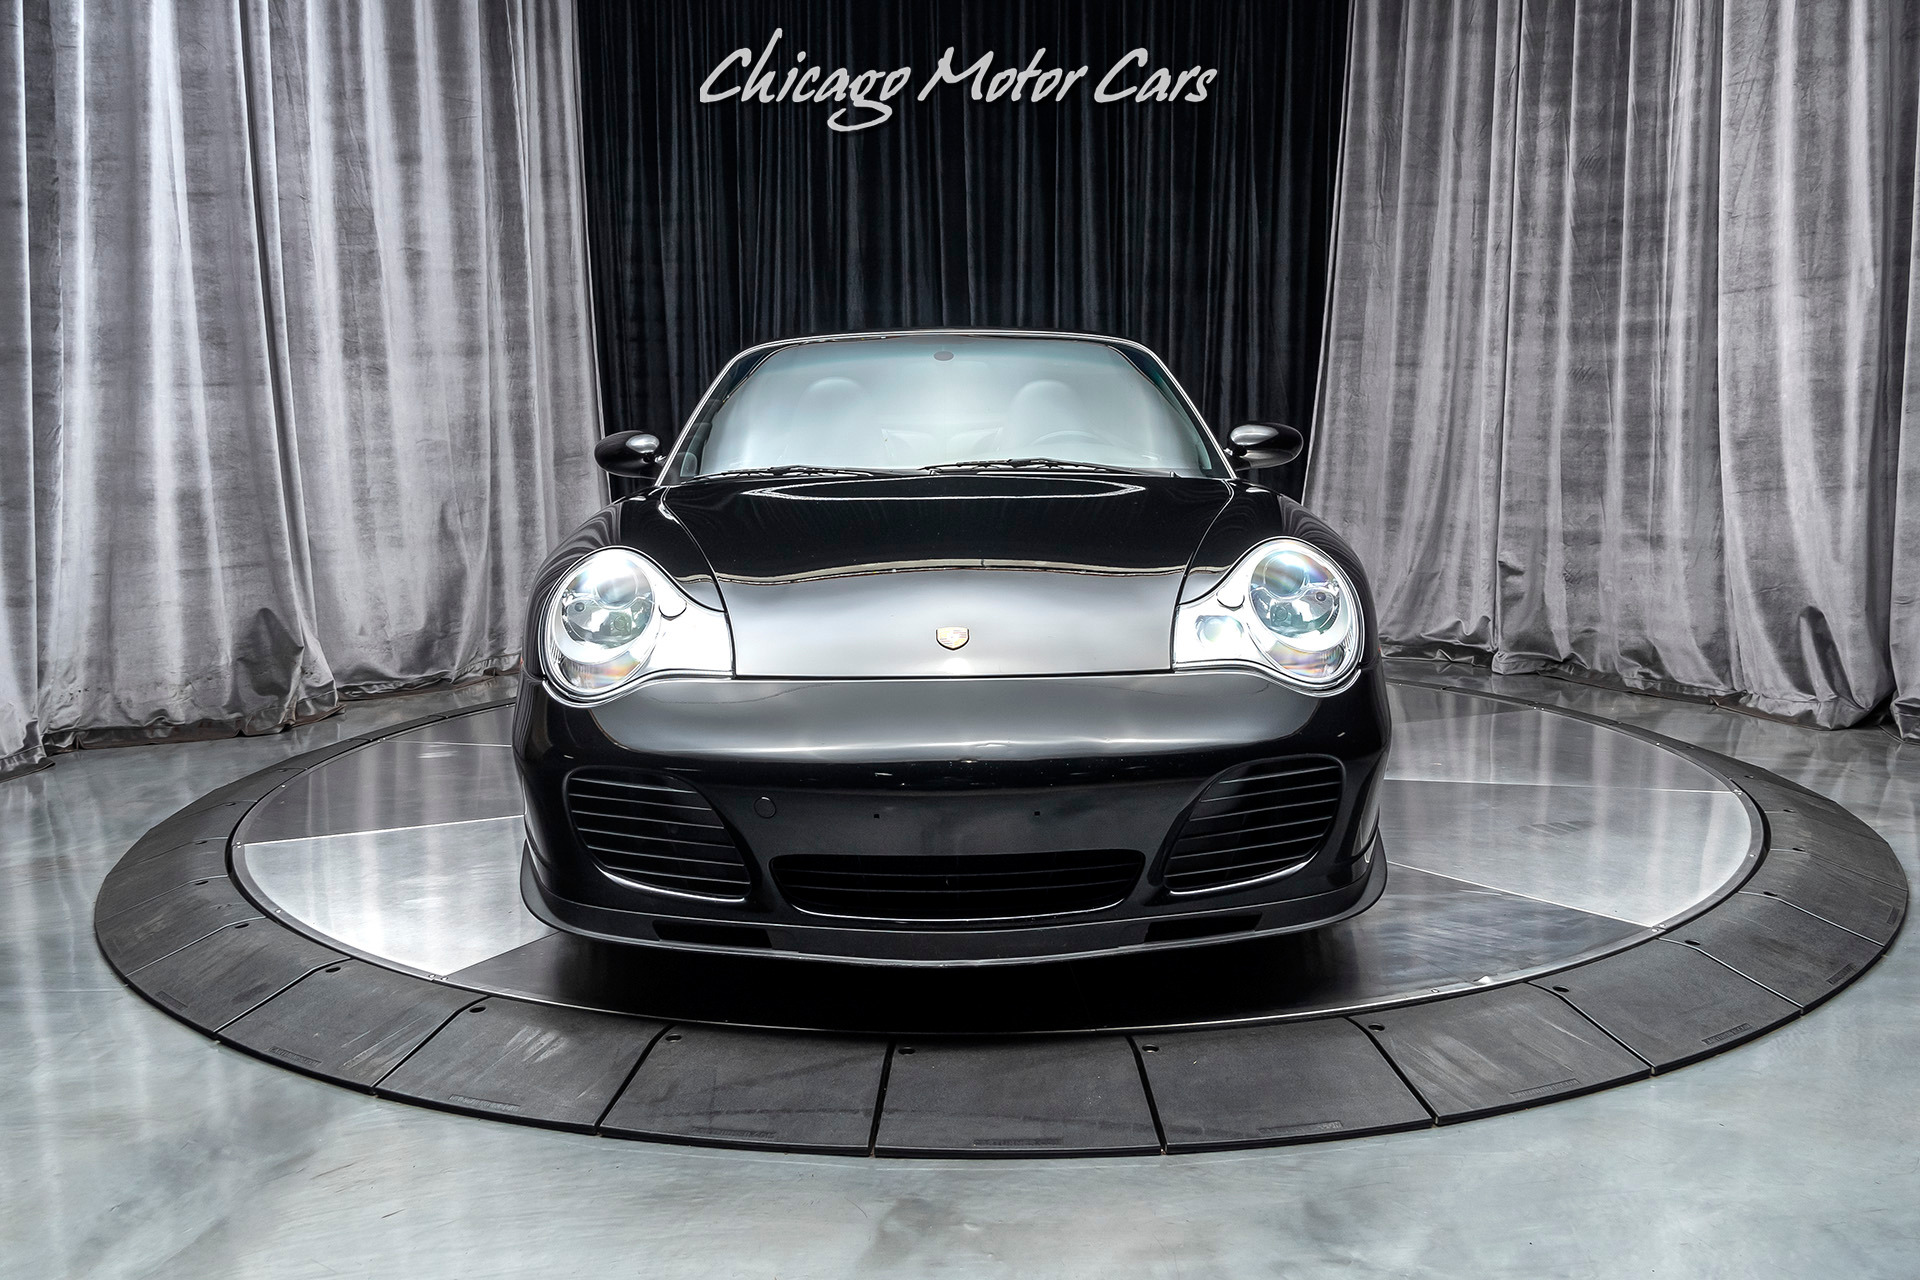 Used-2004-Porsche-911-Turbo-Cab-6-Speed-Manual-129kMSRP